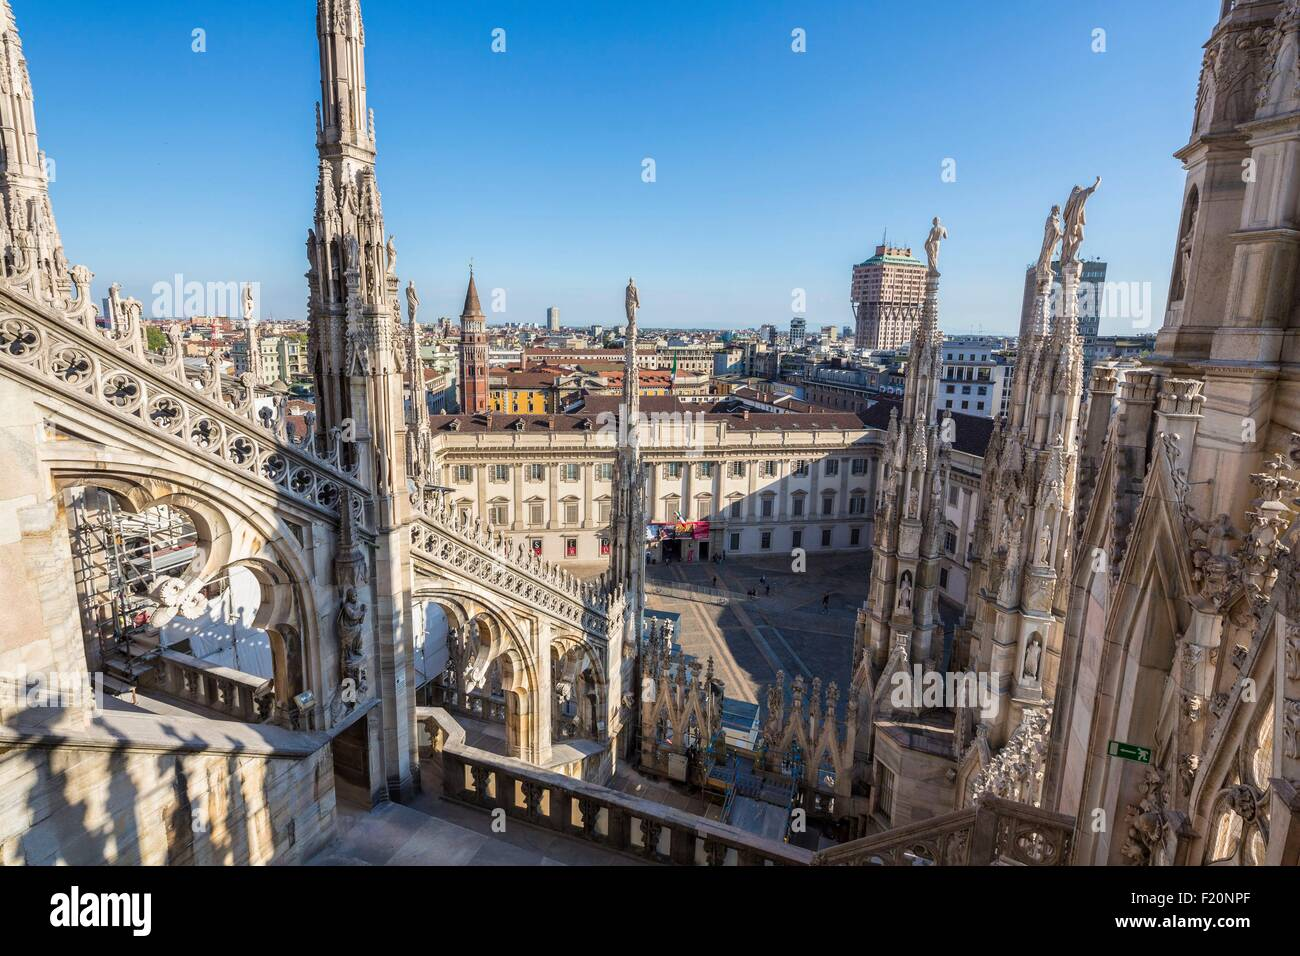 Italy, Lombardy, Milan, the arrows and statues of Duomo seen since the terrace situated on the roof of the cathedral - Stock Image